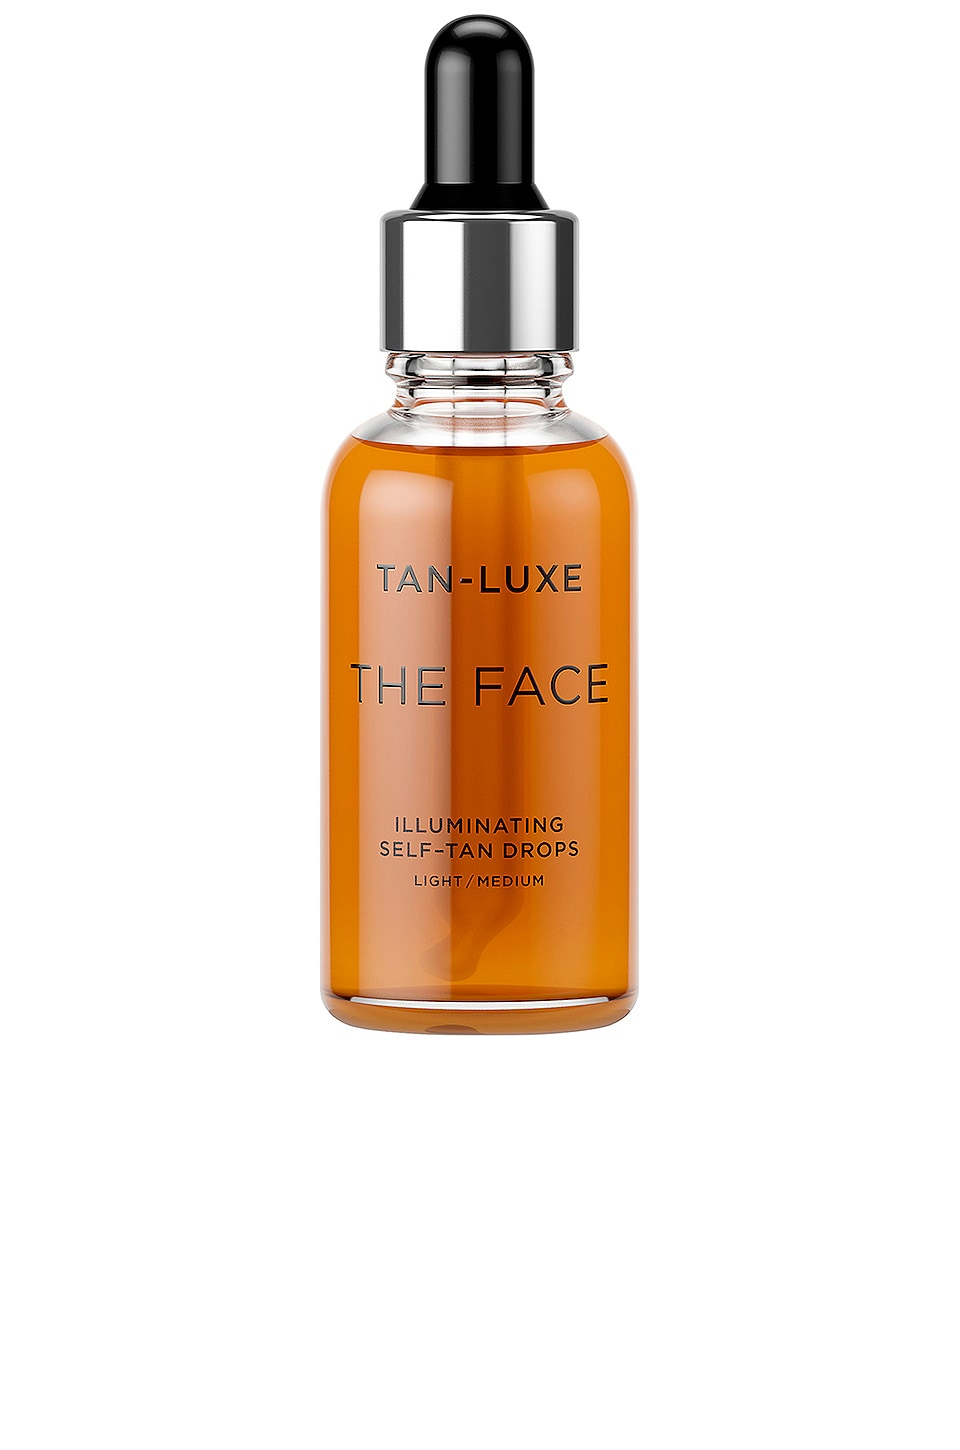 Tan Luxe The Face Illuminating Self-Tan Drops in Light / Medium